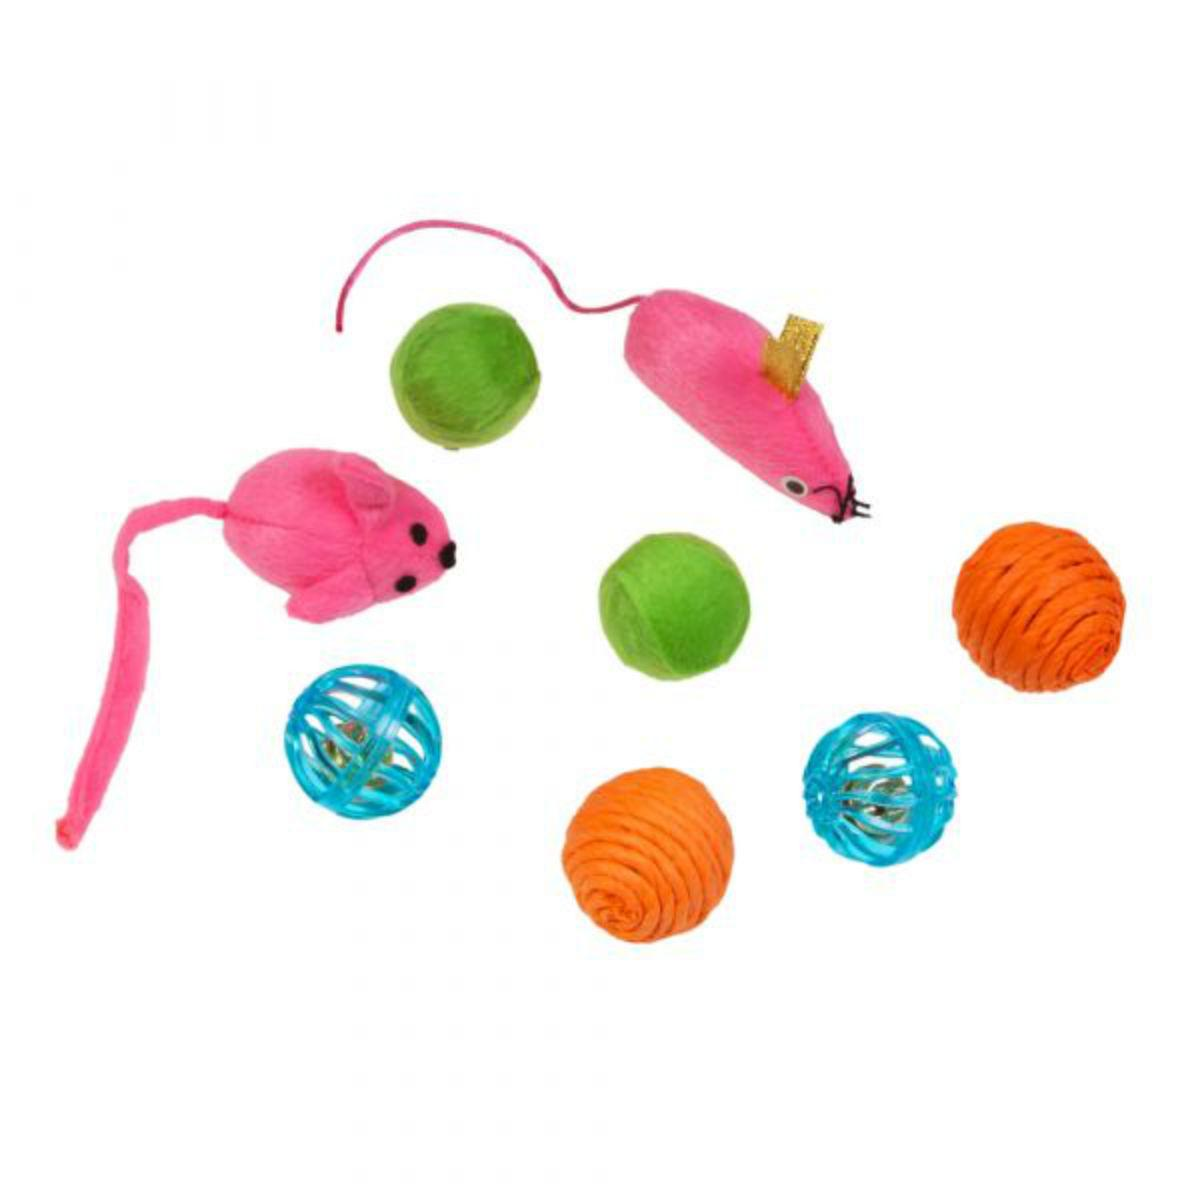 Kylie's Brights Mice and Balls Cat Toys - 8-Pack